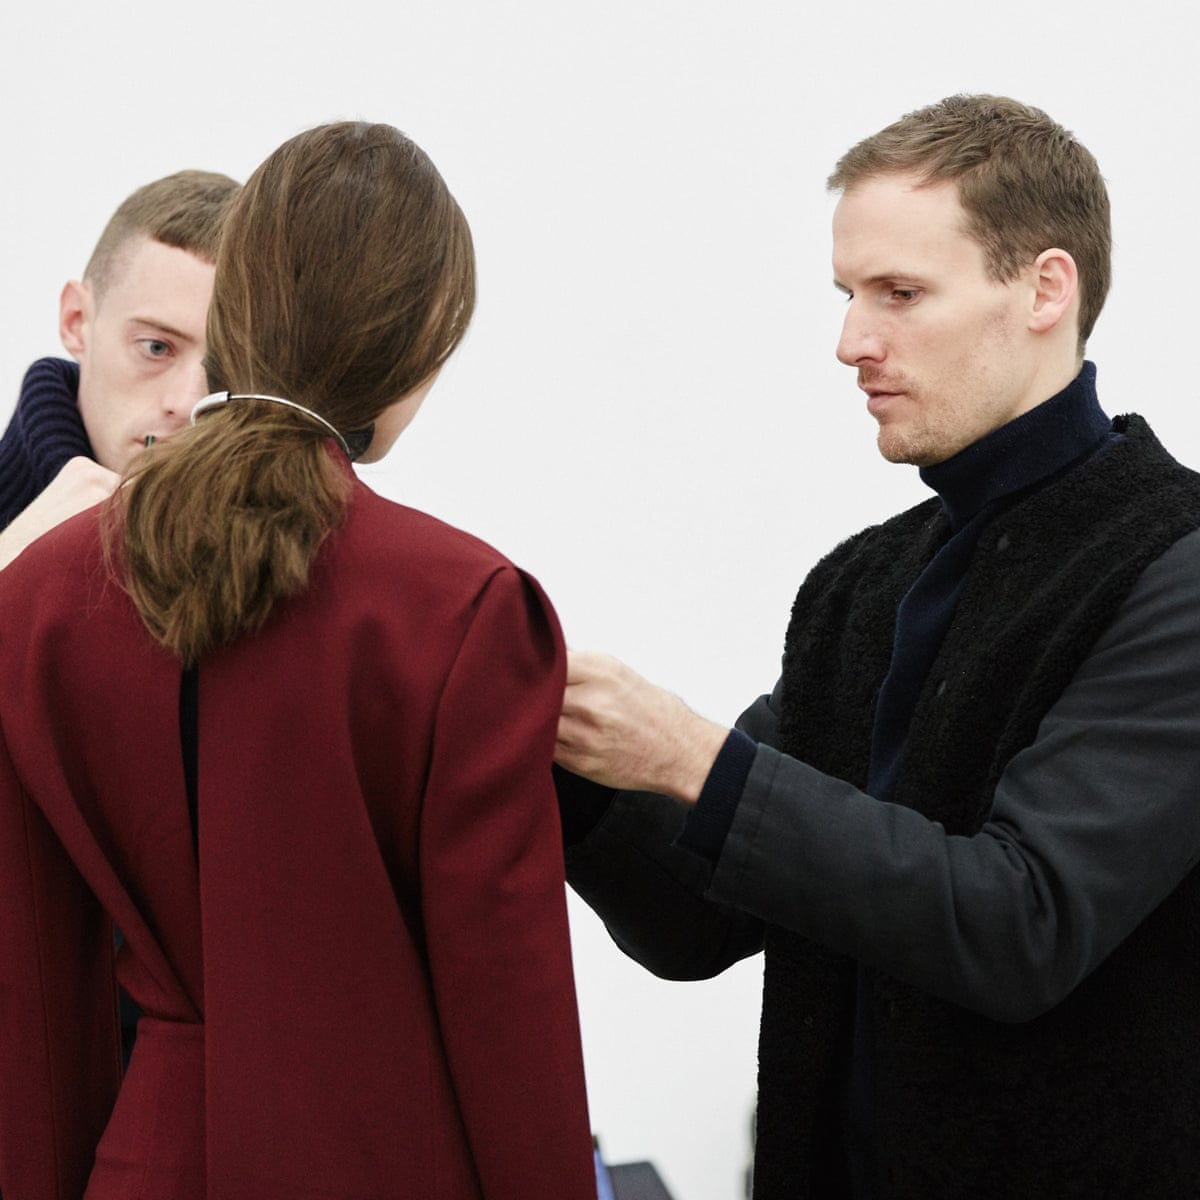 Australian Designer Dion Lee S Breakthrough At New York Fashion Week A Coming Of Age Fashion The Guardian